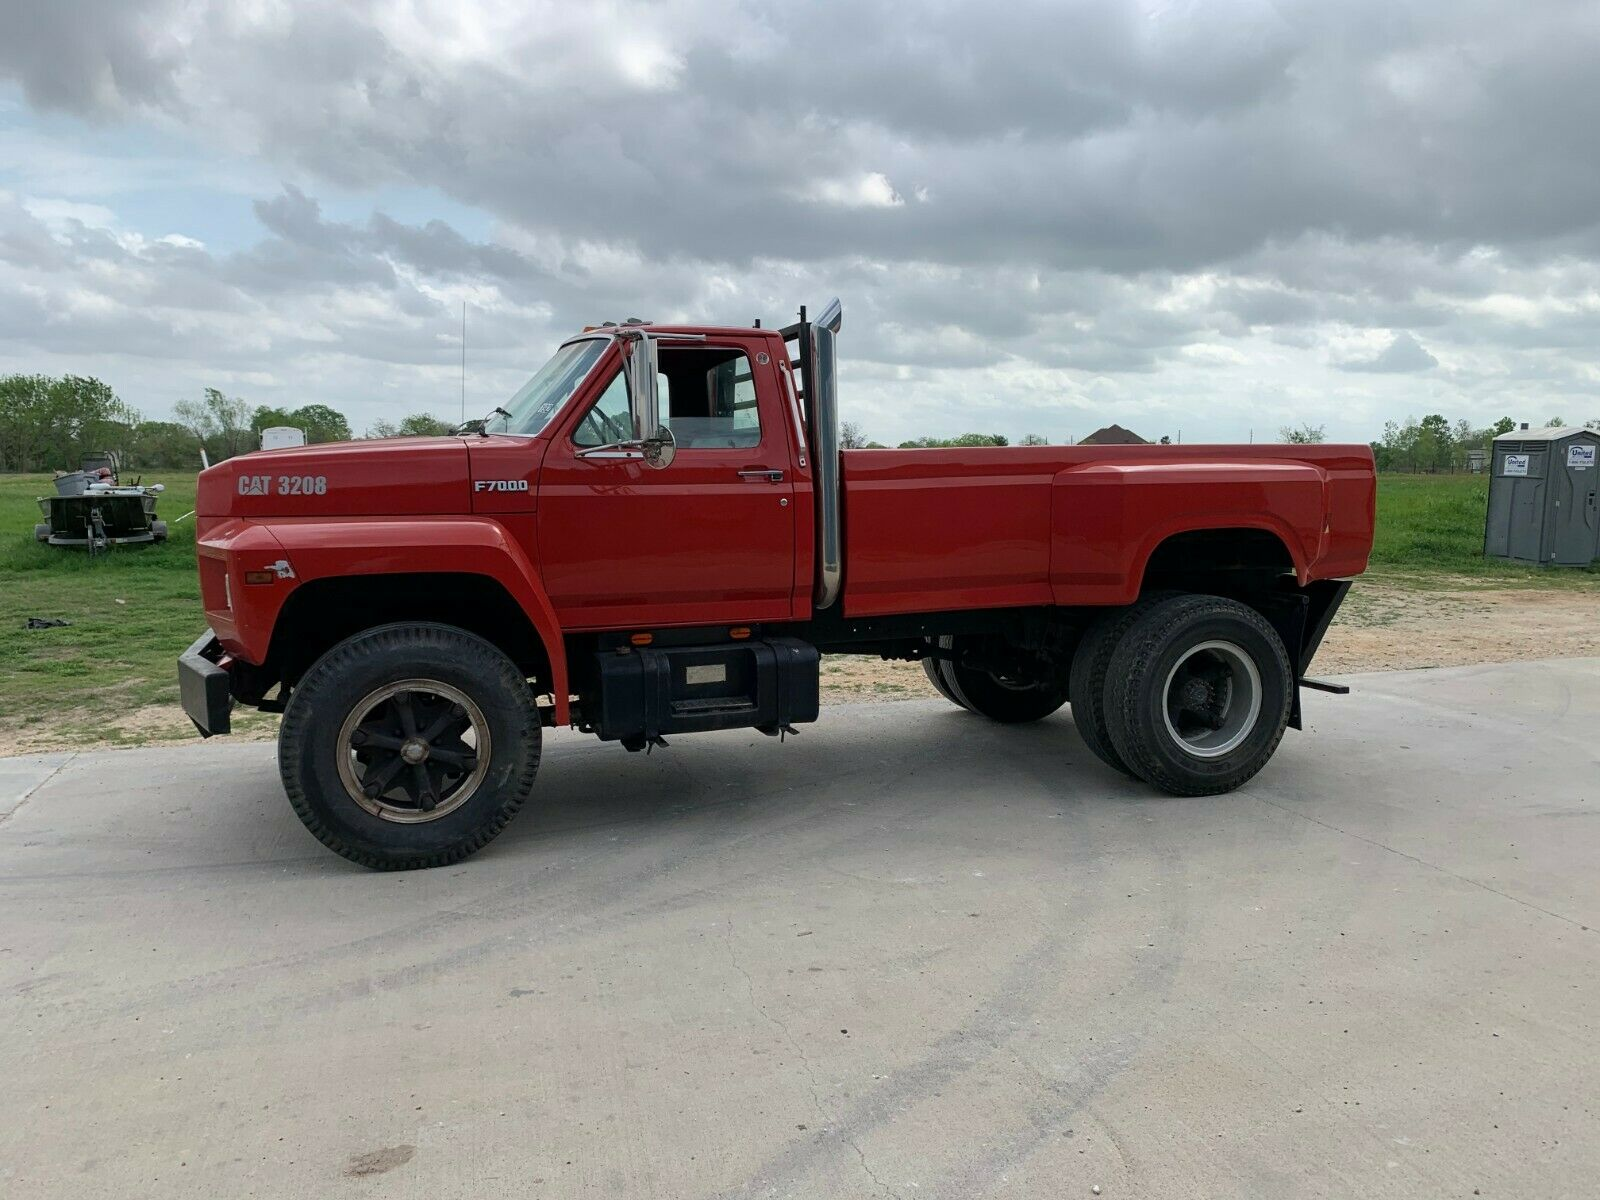 1900 Ford F7000  1987 CUSTOM FORD F700 F7000 PICKUP CAT ENGINE STACKS DUALLY TRUCK - SEE PHOTOS